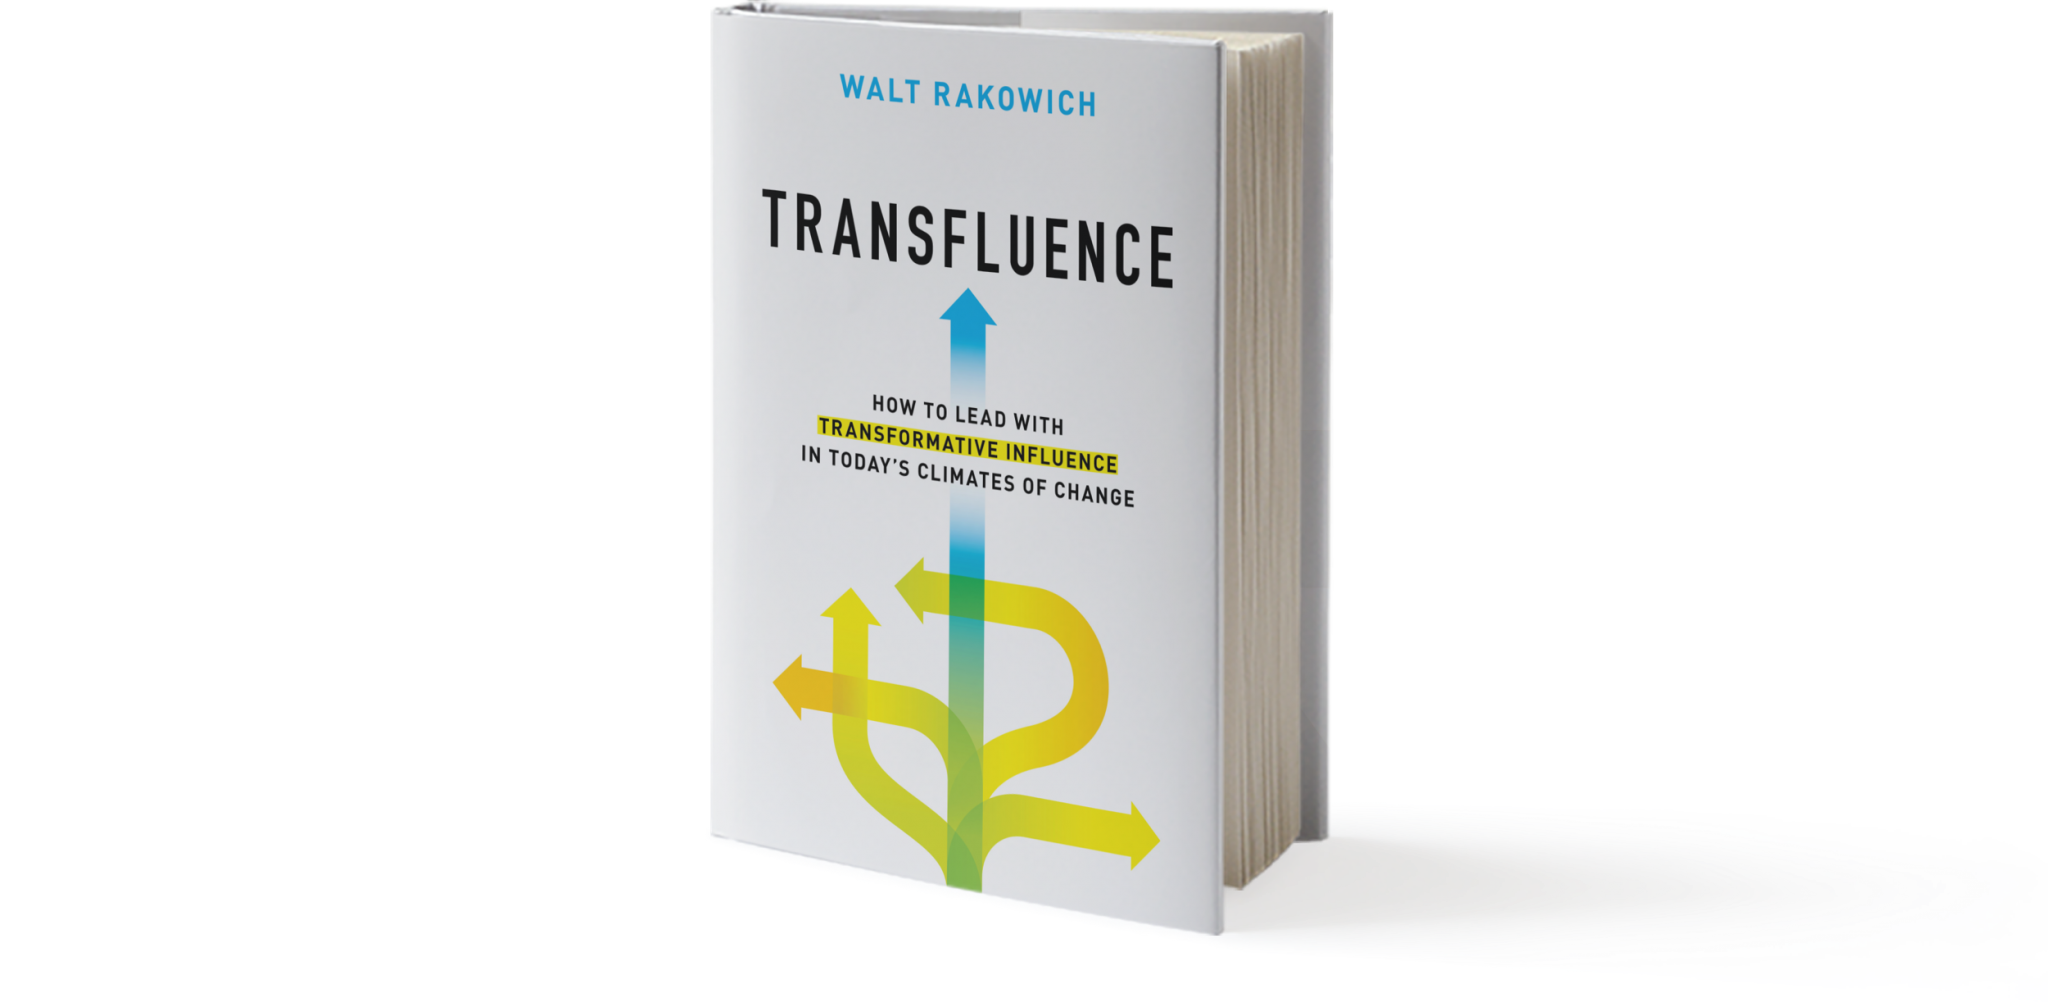 Transfluence: Leading with Transformative Influence in Today's Climates of Change